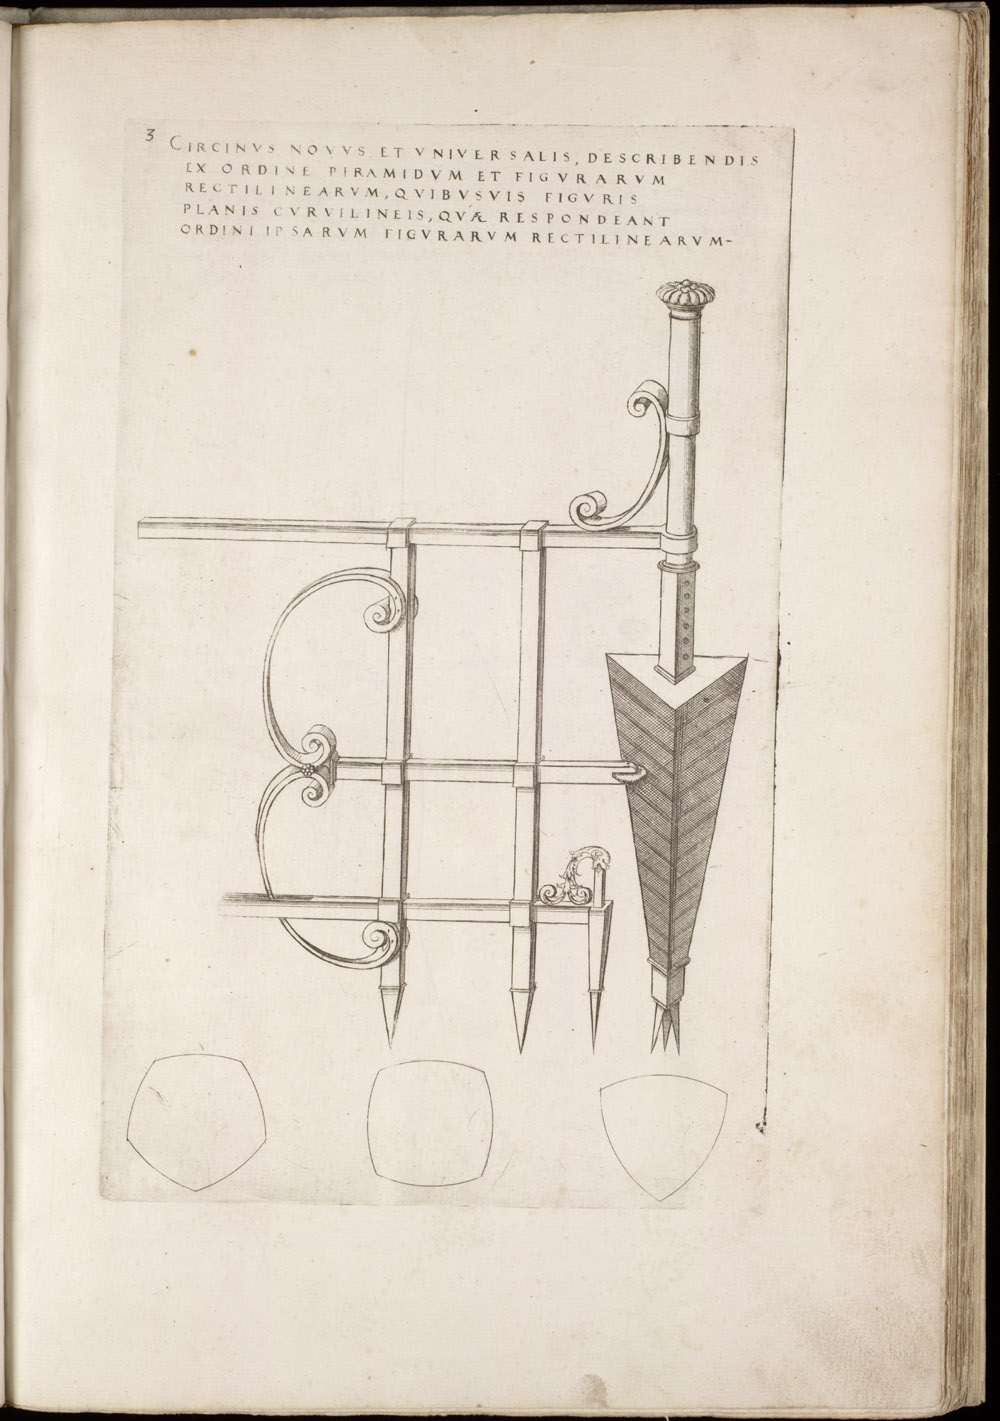 Plate 3 [Drawing compass],  Image number:SIL4-2-39a